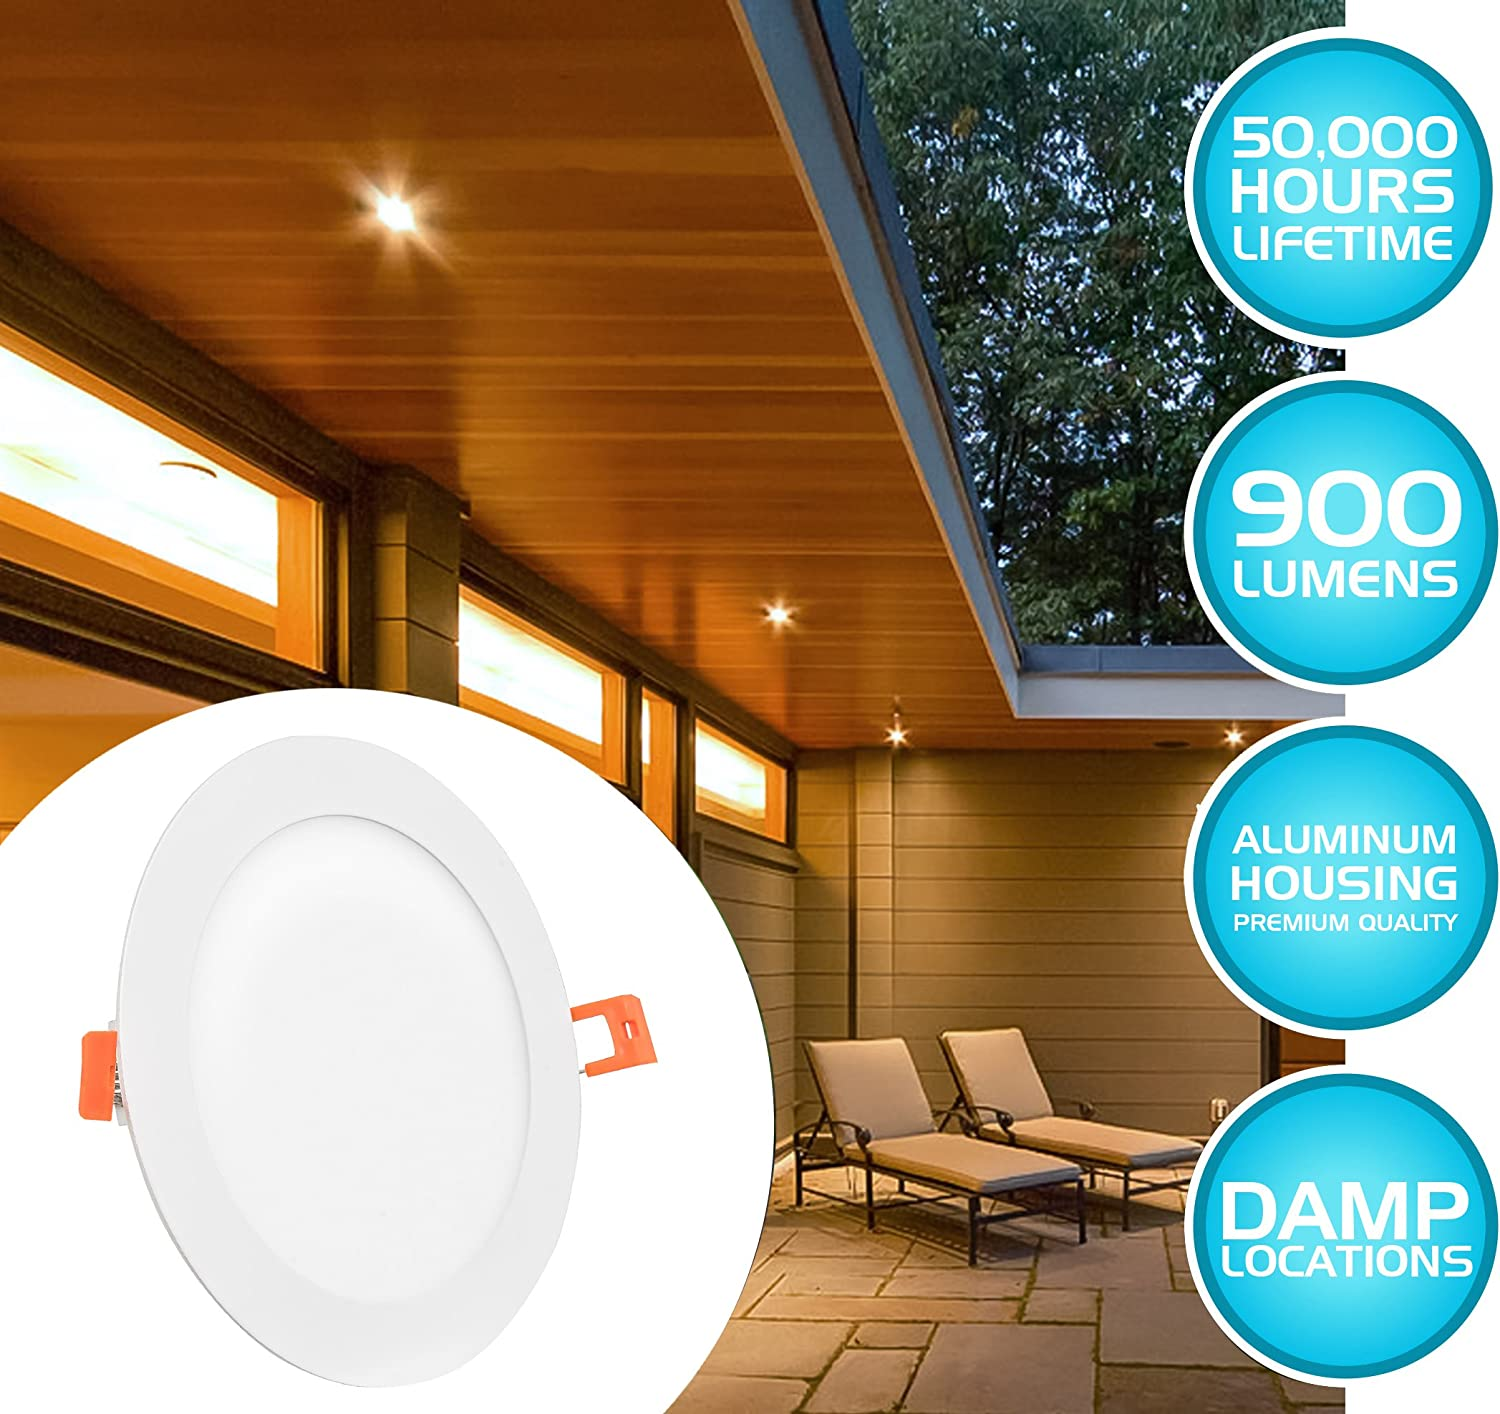 Junction Box Included Westgate Lighting 15W 6 Inch Ultra Thin Slim LED Recessed Light 4 Pack 3000K Warm White Ceiling Lights No Housing Required Dimmable Retrofit Downlight Smooth Trim